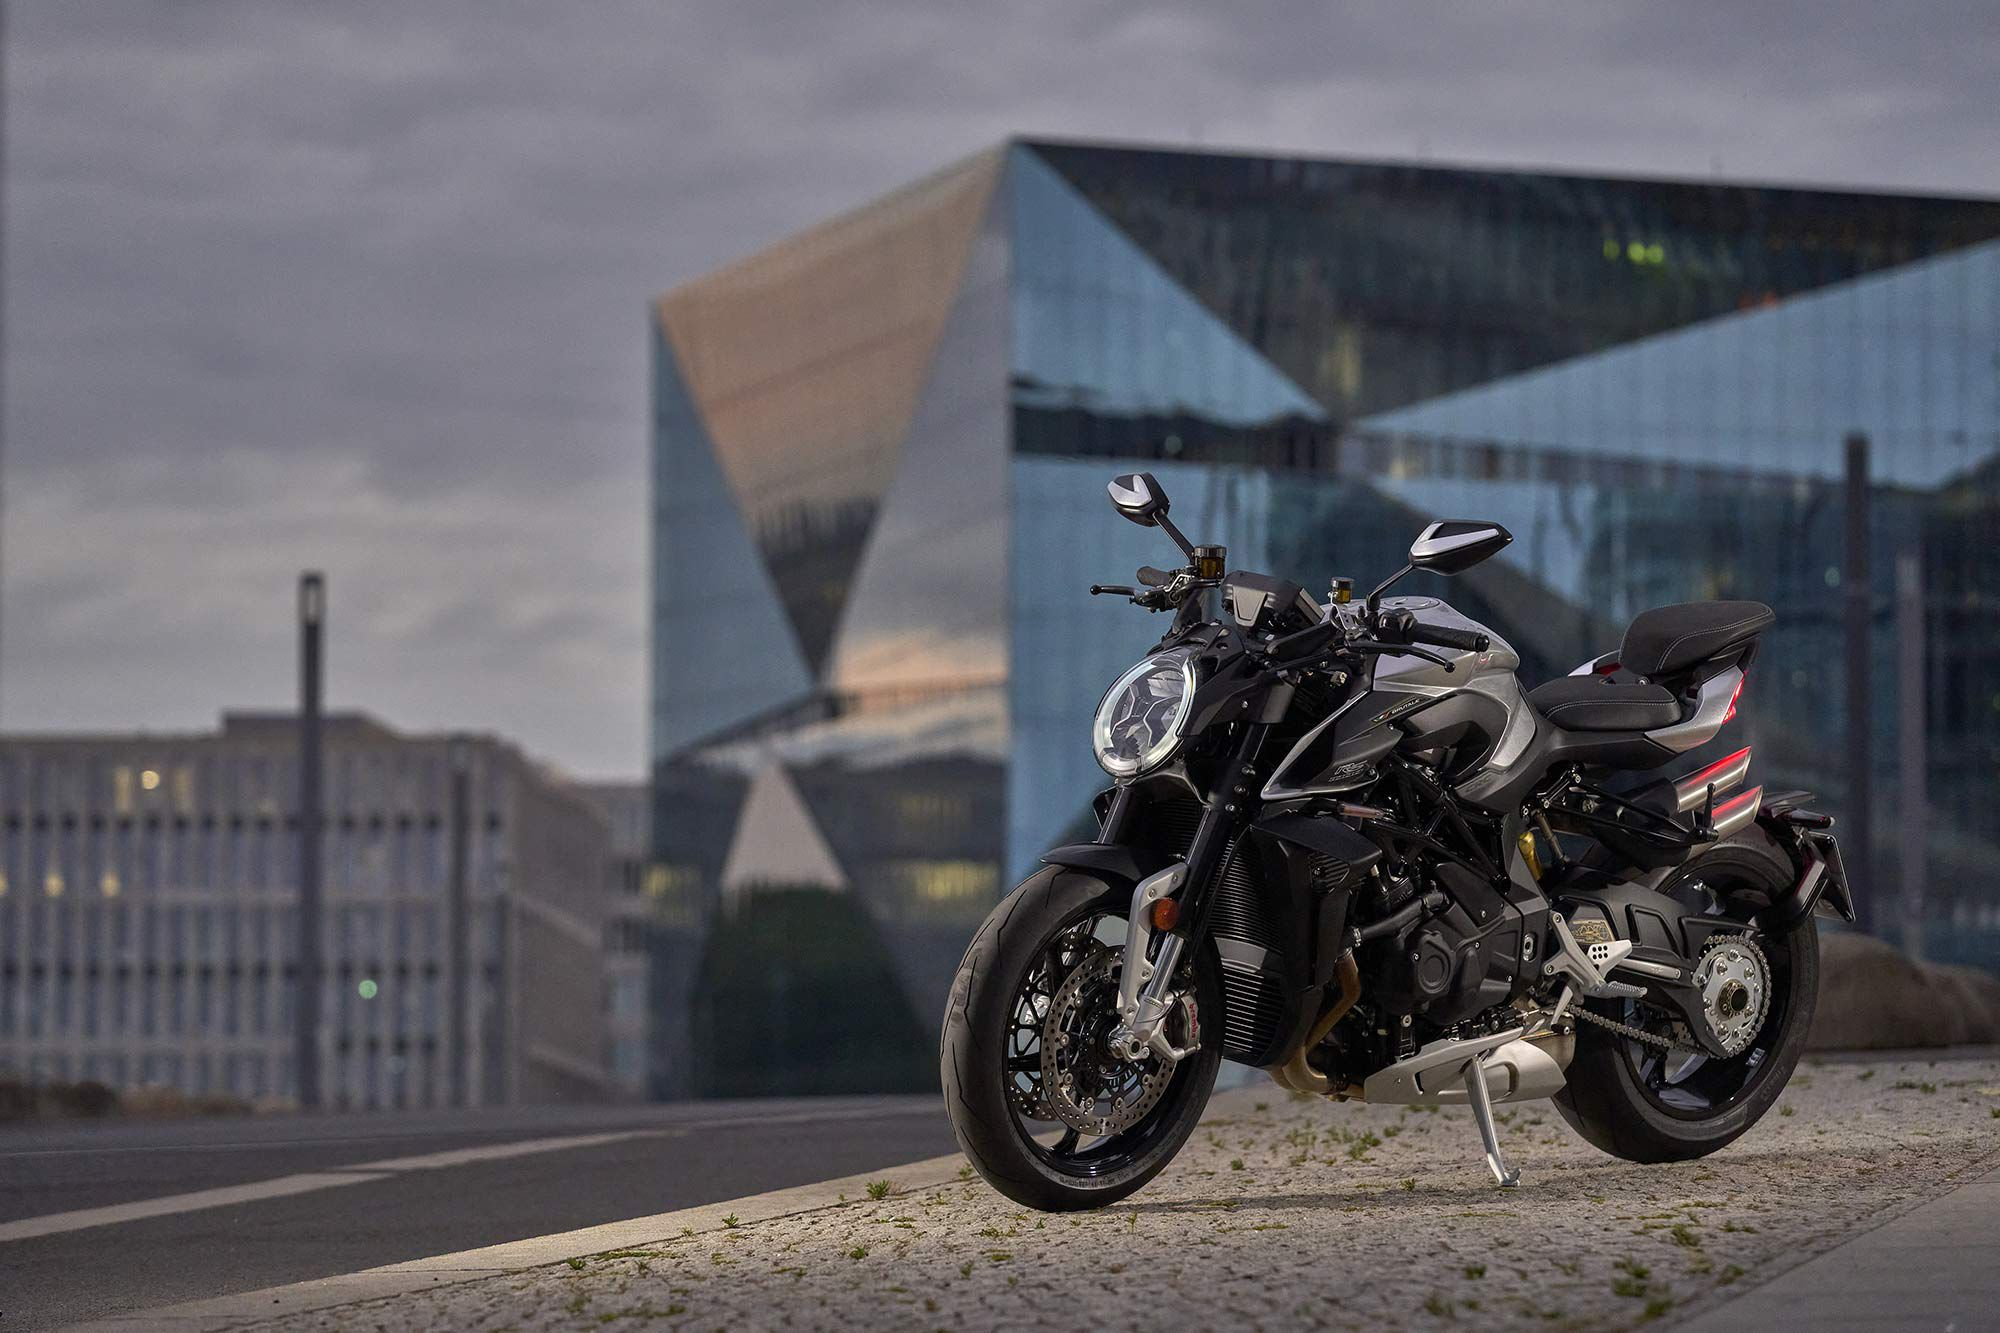 The Brutale is aptly named: Has a family of motorcycles ever looked as deliberate, exotic, aggressive, and densely muscular as the current lineup?